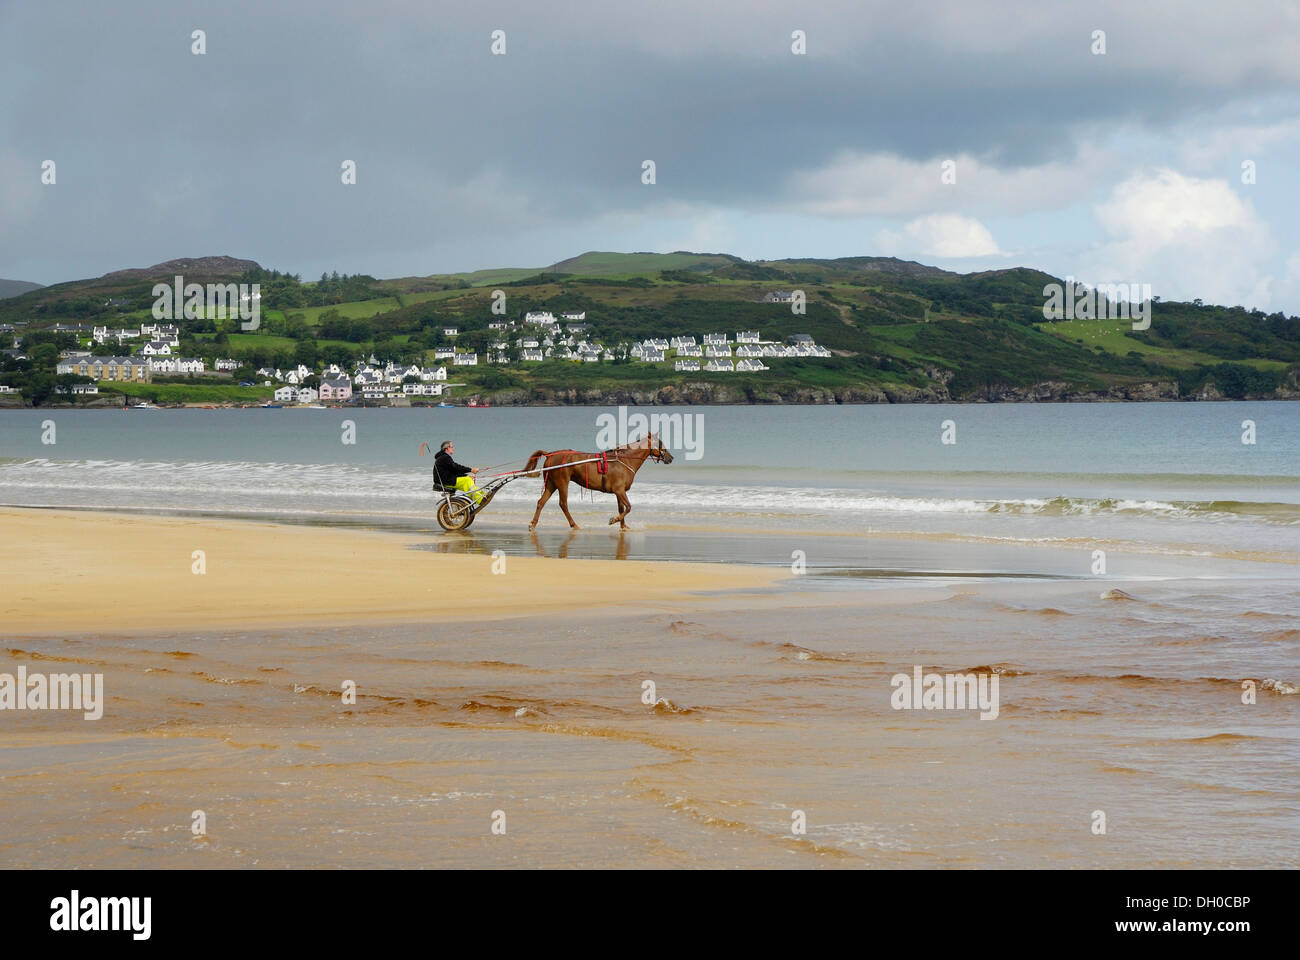 Trotter training with his horse on the sandy beach of Portsalon, County Donegal, Ireland, Europe - Stock Image